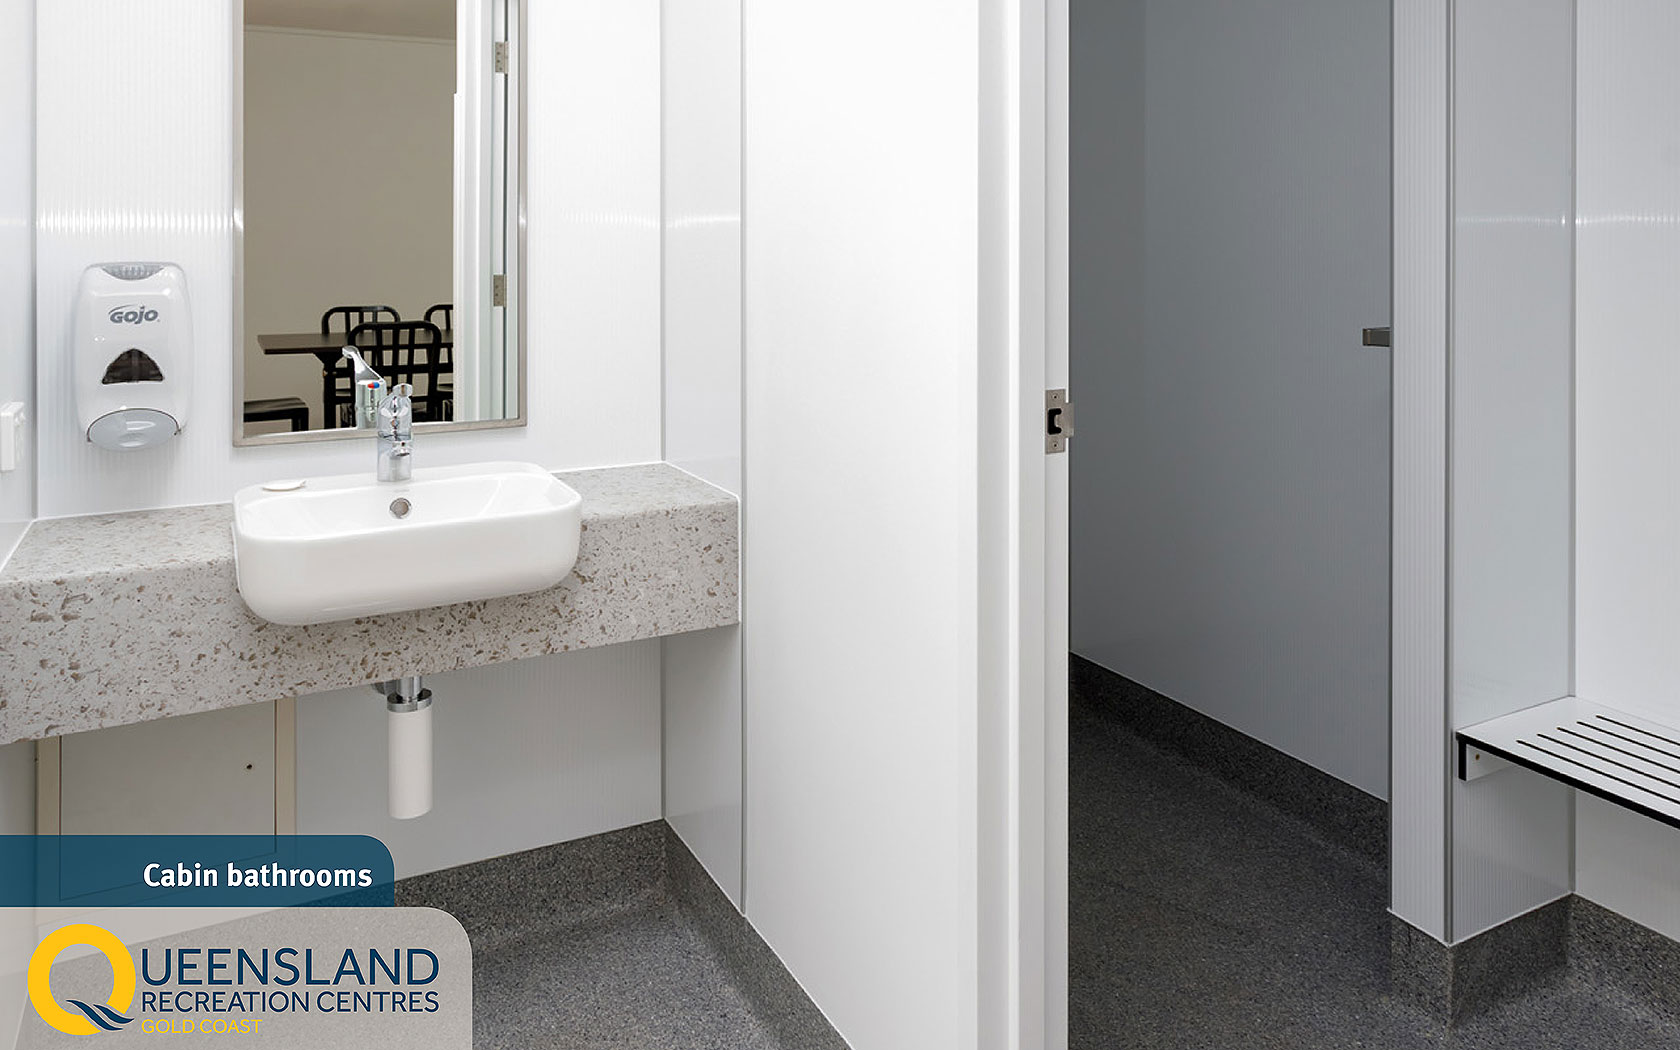 Standard cabin adjoining bathroom with separate shower, mirror, sink and accessible dispensers at the Gold Coast Recreation Centre